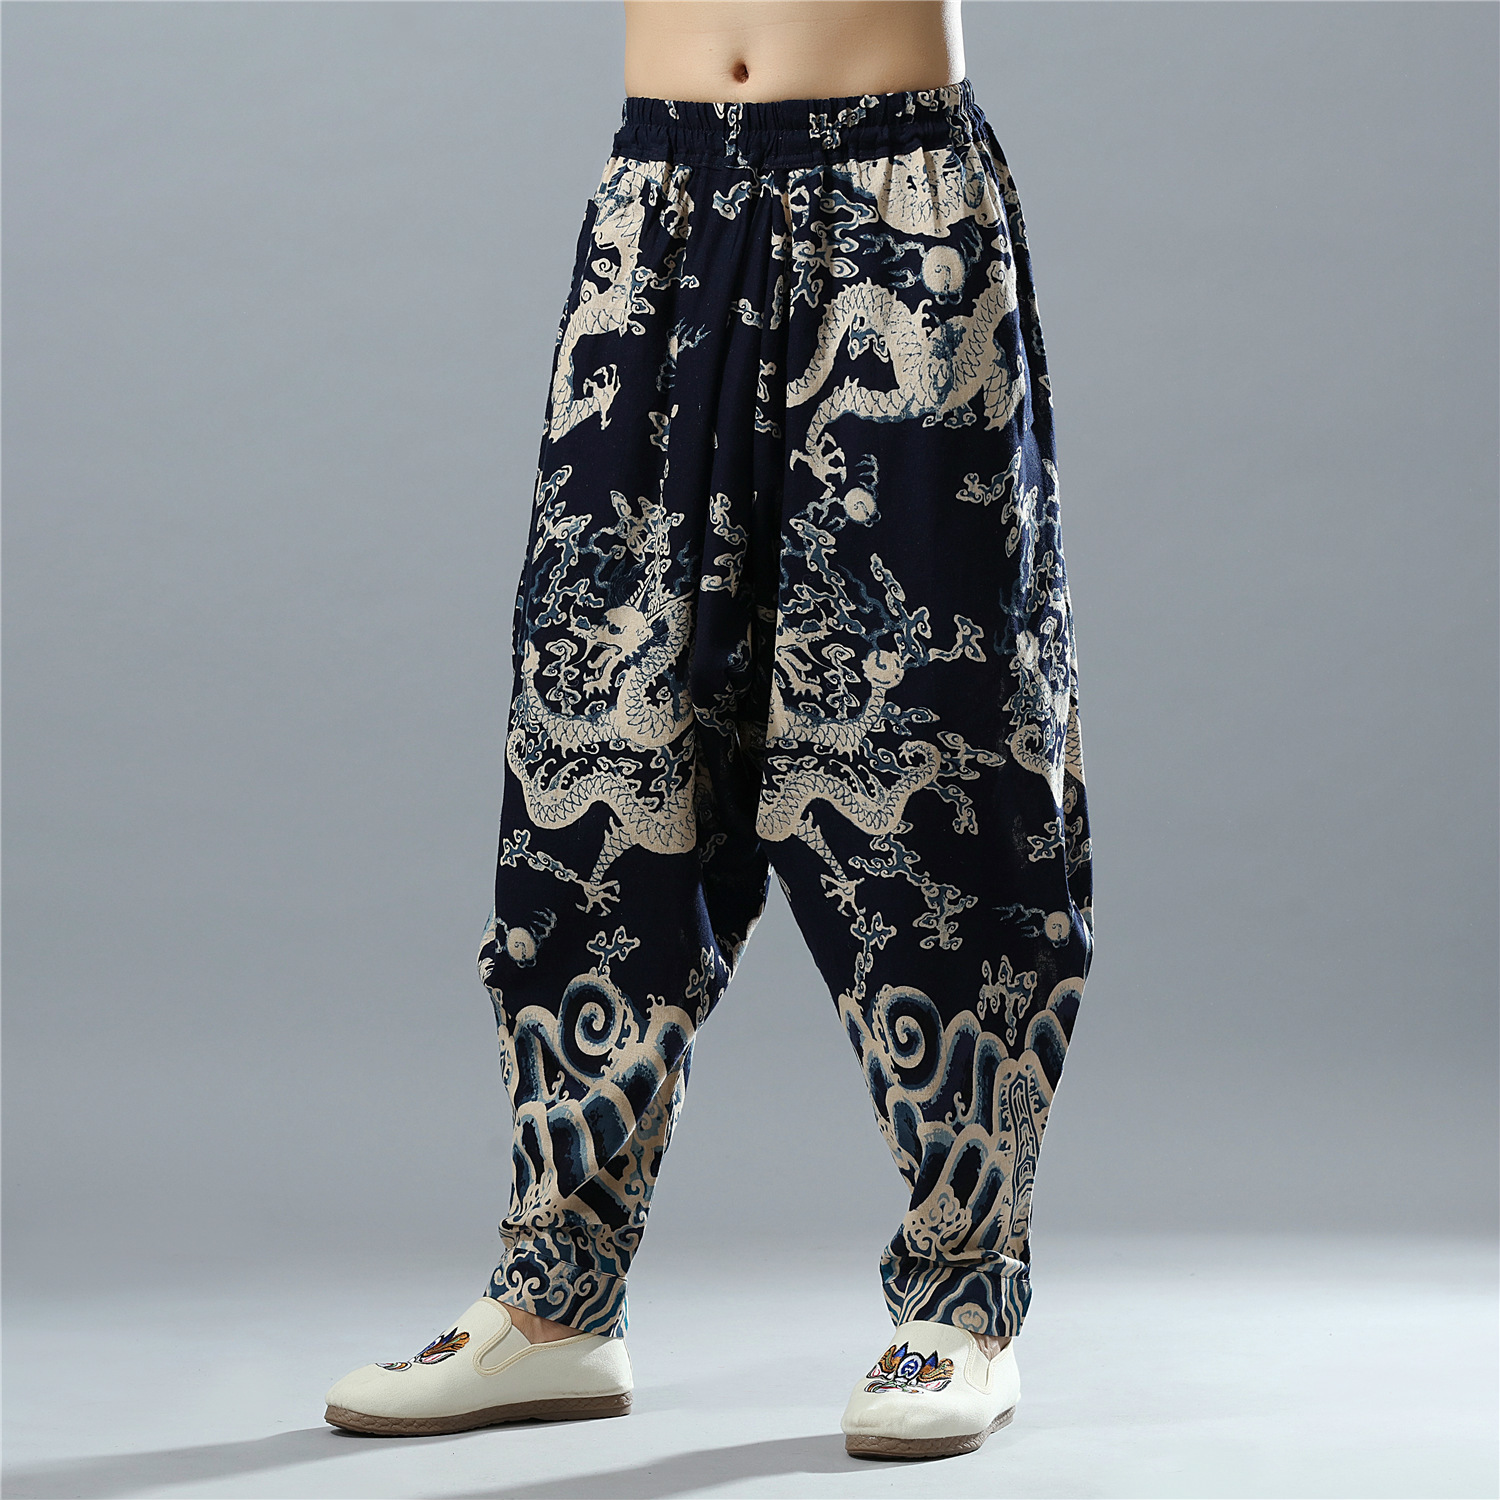 Shop for low price, high quality Harem Pants on AliExpress. Harem Pants in Pants, Men's Clothing & Accessories and more EMAIGI 7 Colors China Style Men Wide Leg Harem Pant Drop Crotch Cross Pant Male Loose US $ / piece Free Shipping | Orders (17) EMAIGI DF Store. Add to Wish List.